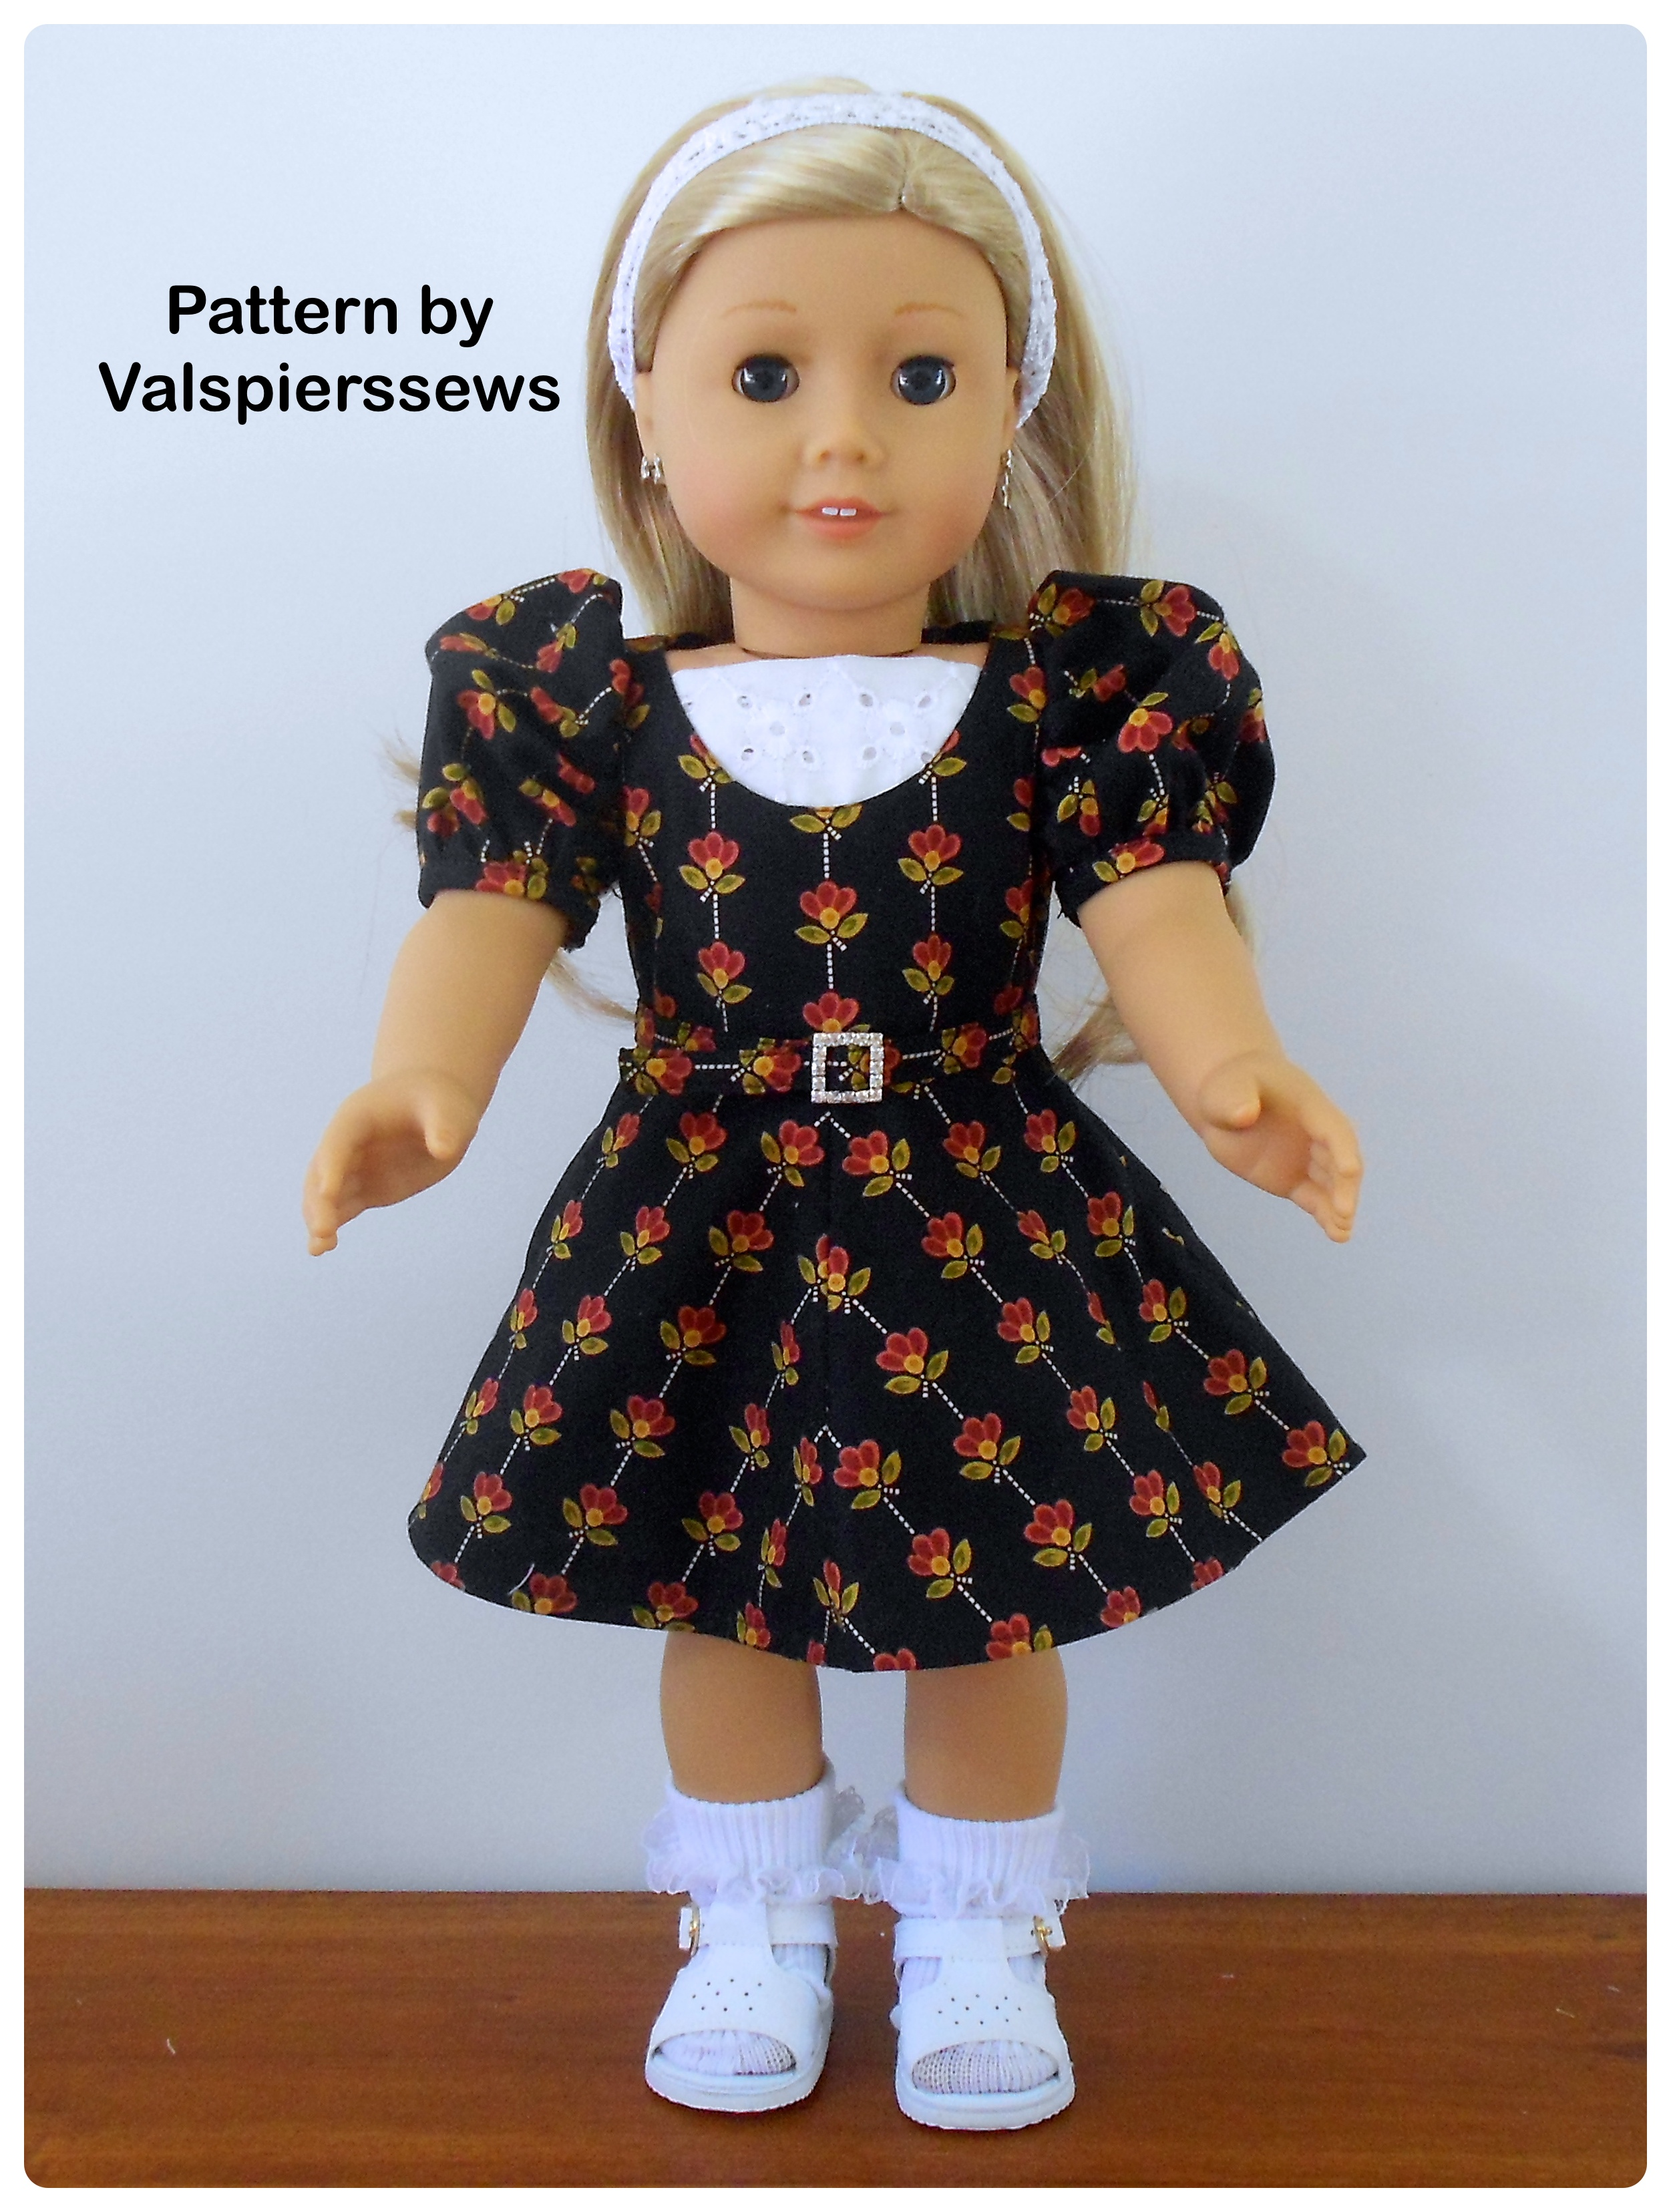 Scoop Neck 1/2 Circle Skirt Doll Clothes Dress